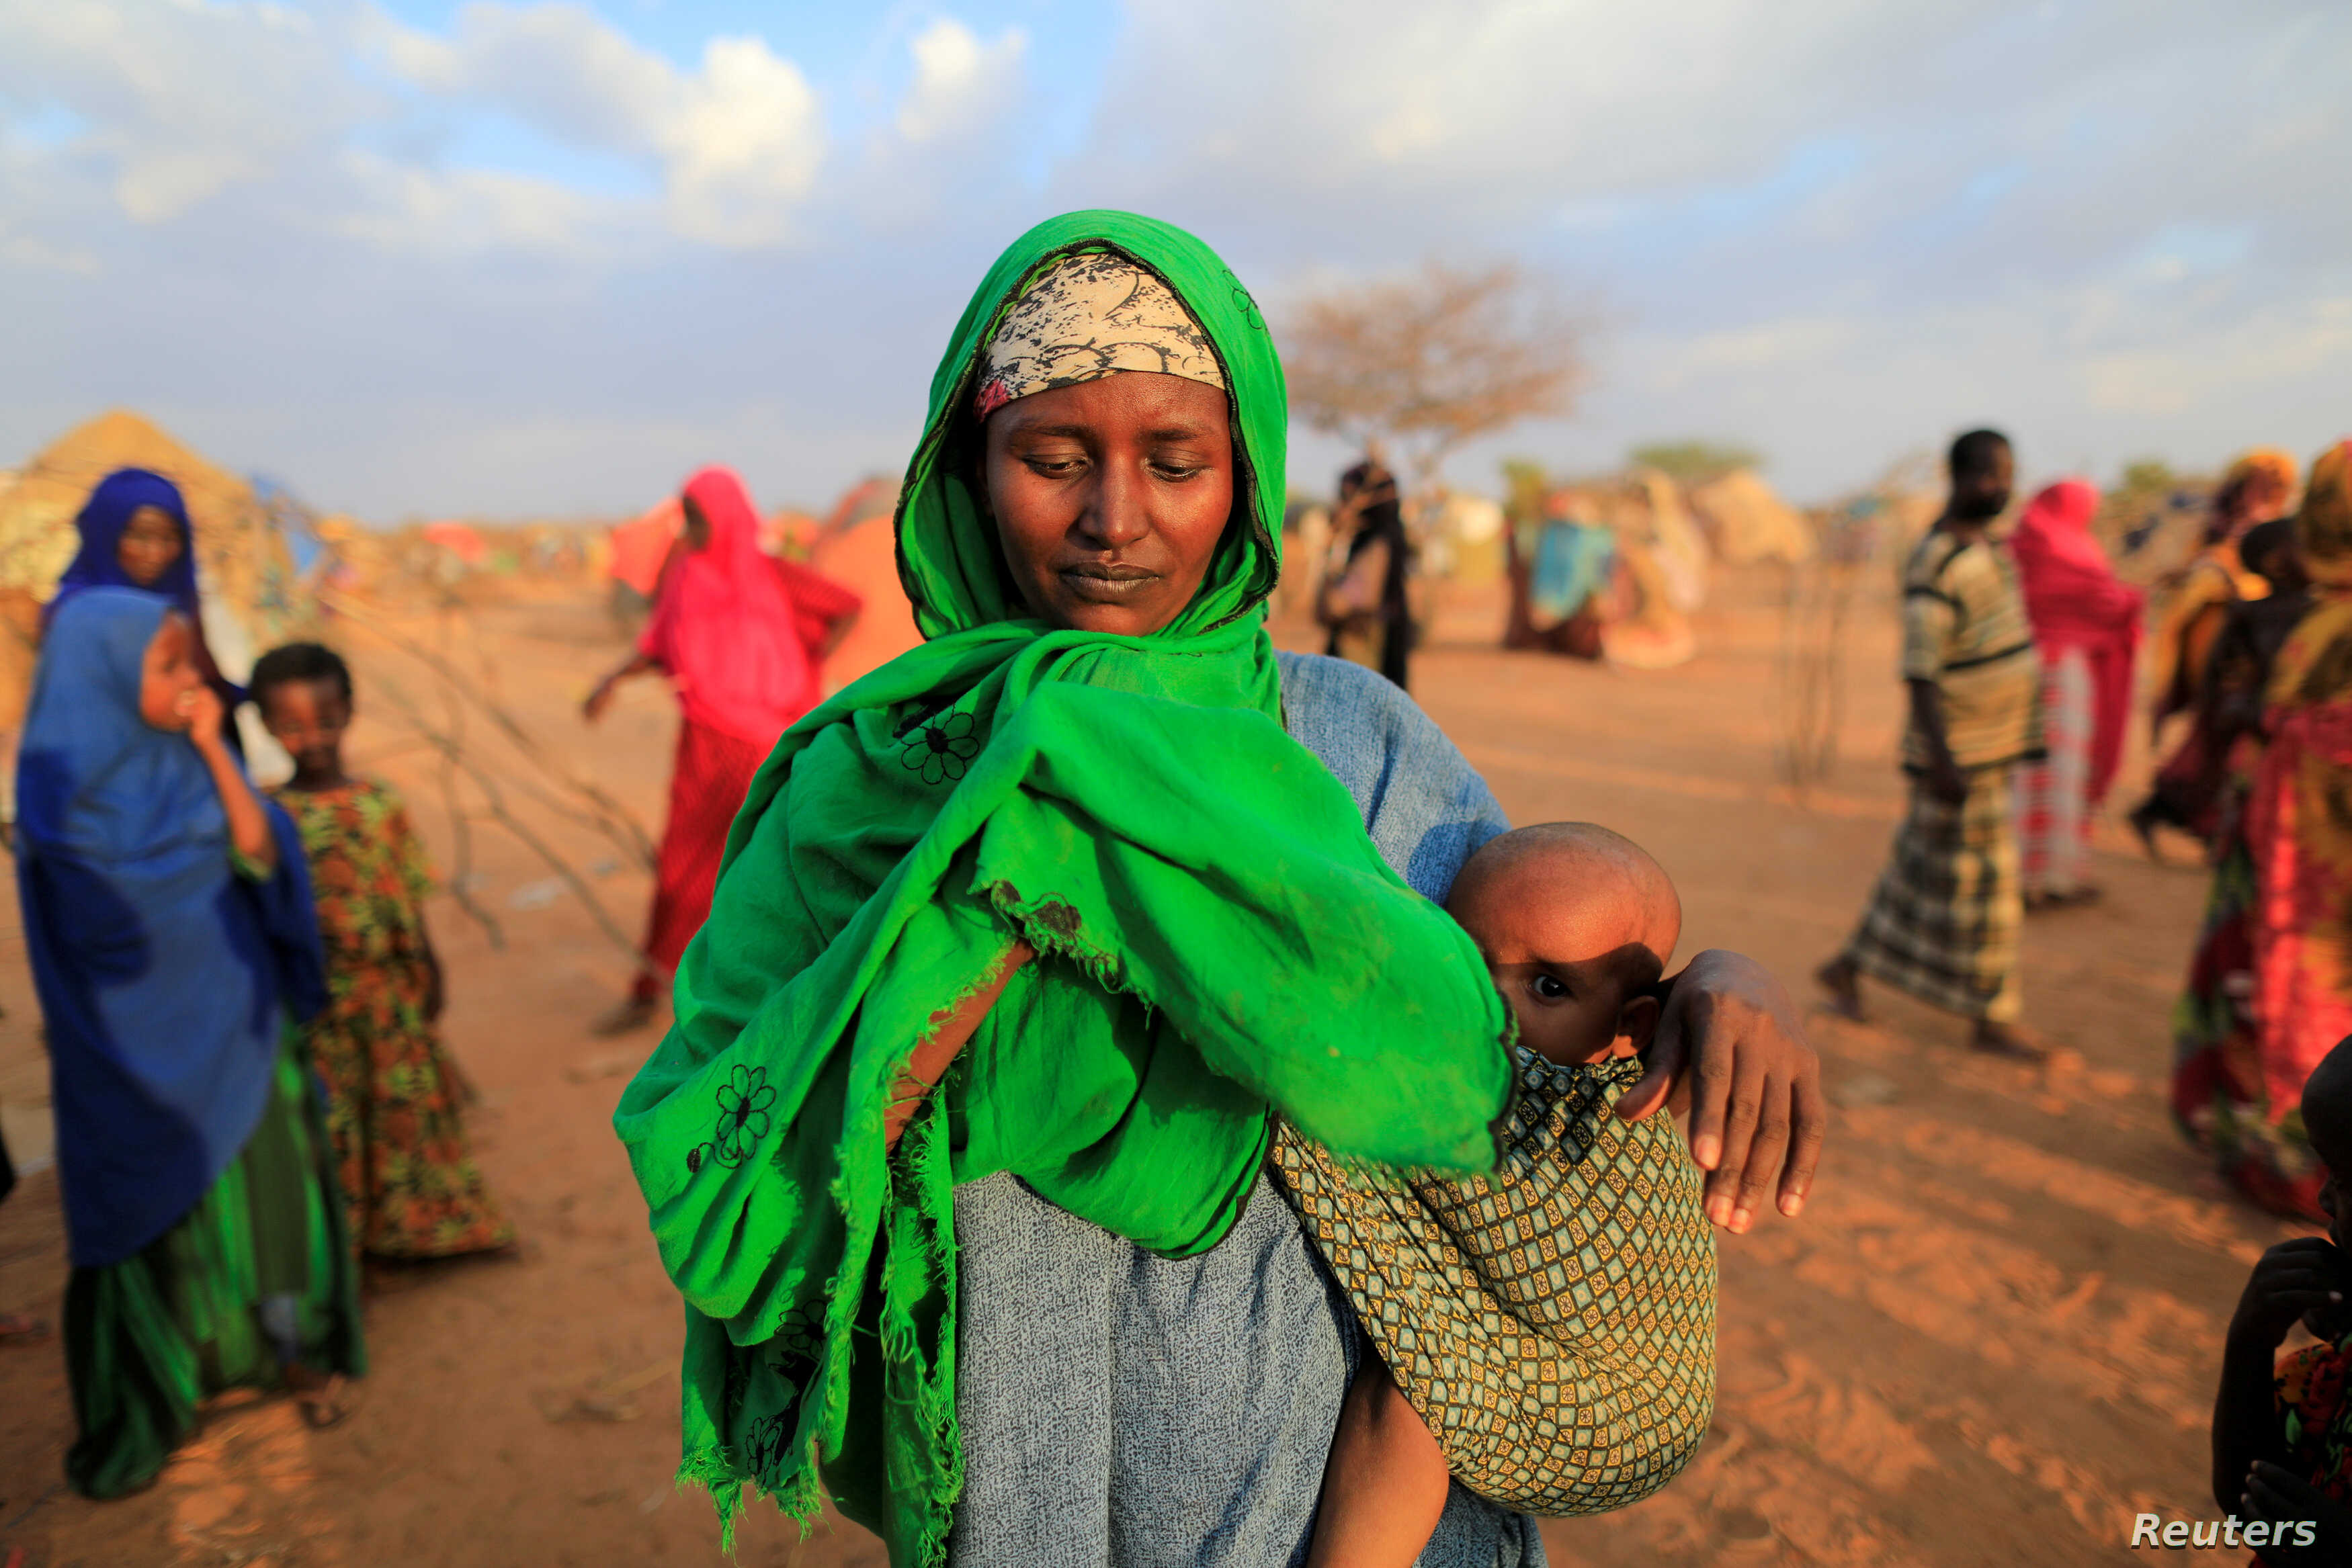 FILE - An internally displaced woman from a drought-hit area reacts after she complains about the lack of food at makeshift settlement area in Dollow, Somalia.